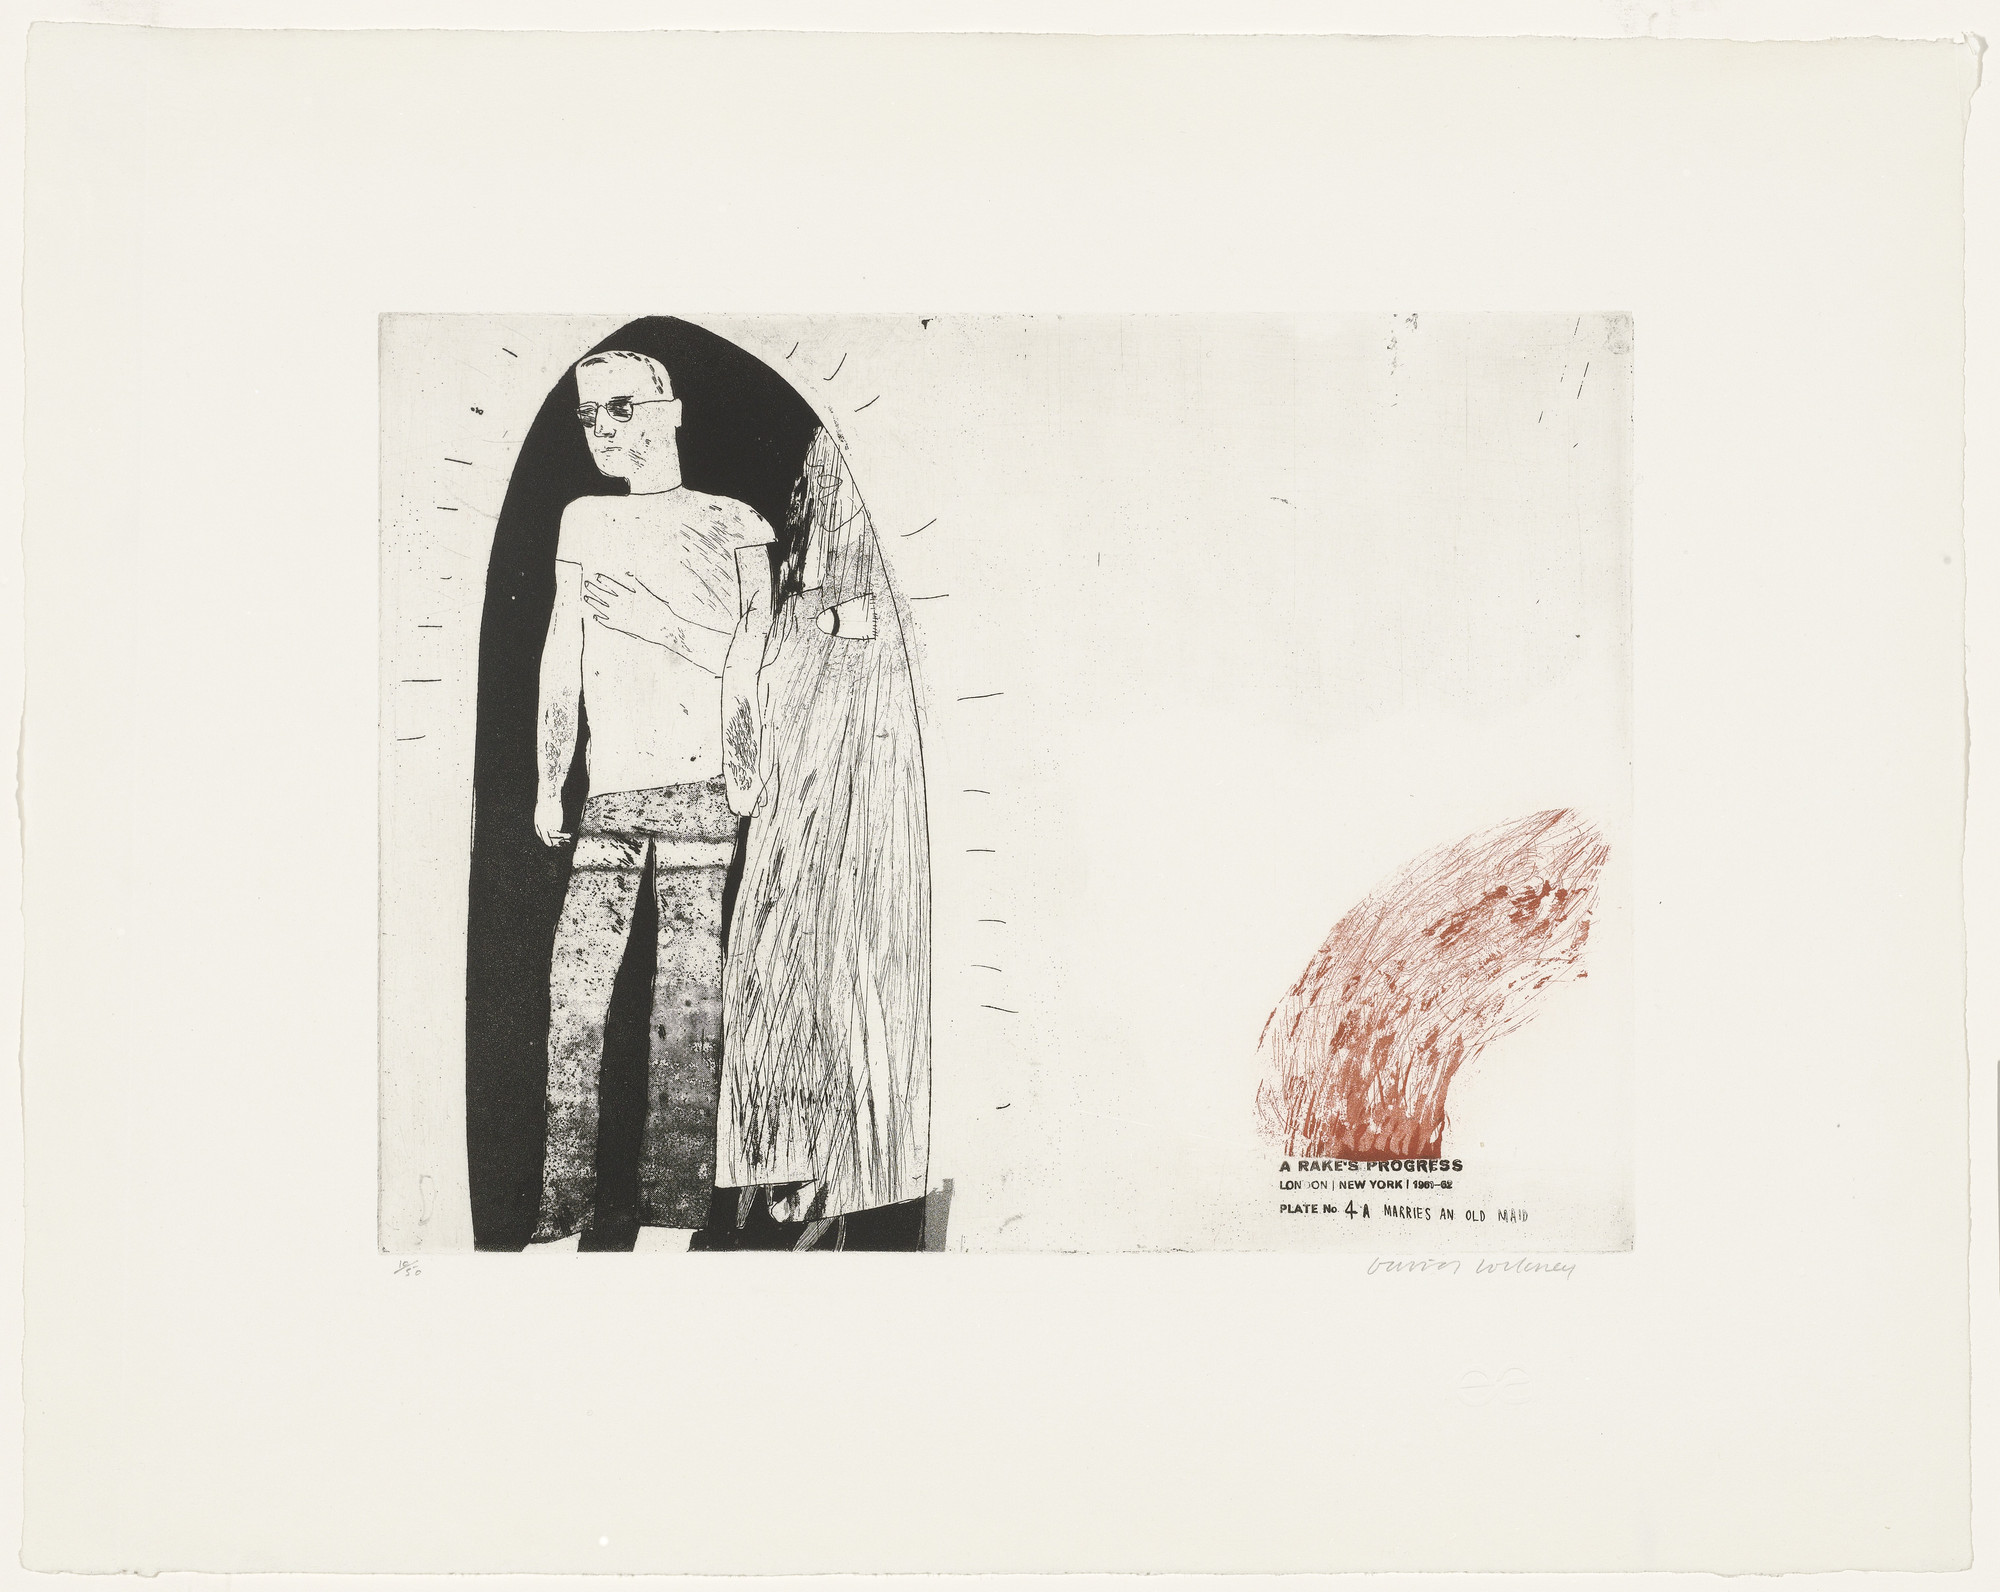 David Hockney. Marries an Old Maid (plate 4a) from A Rake's Progress. 1961–62, published 1963